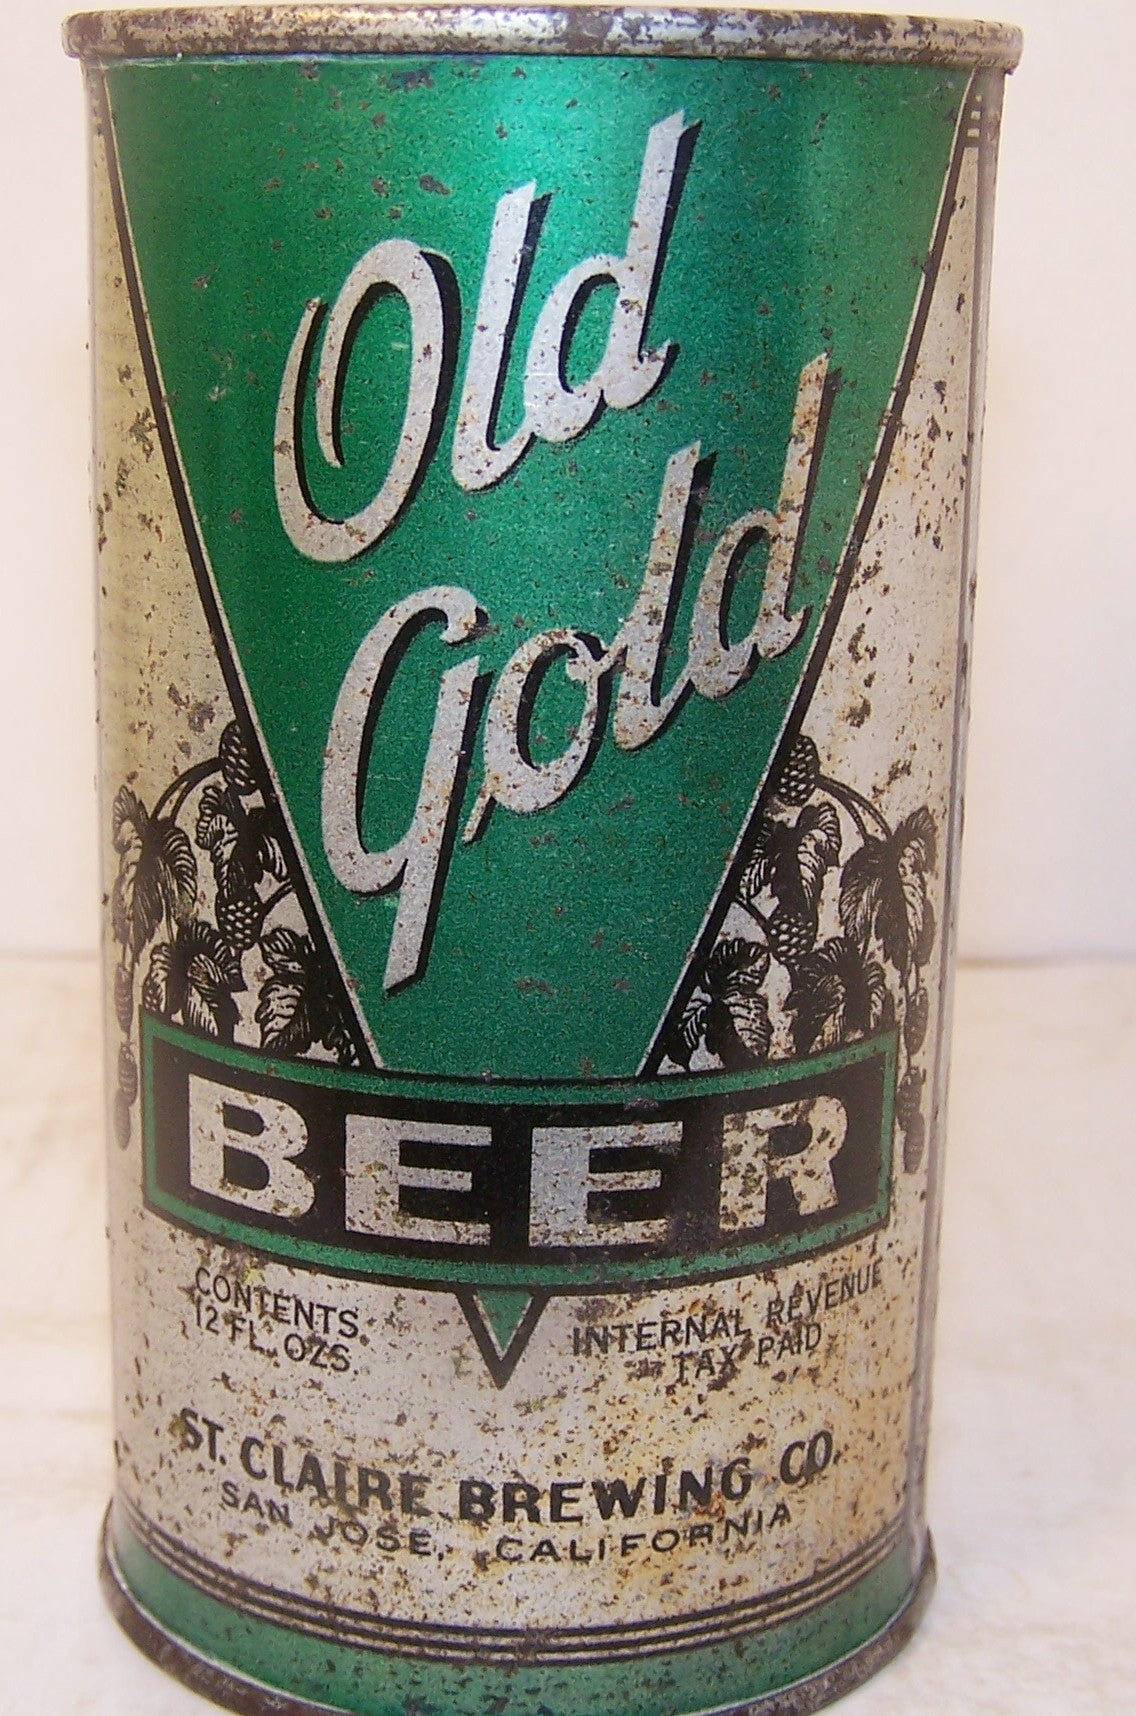 Old Gold Beer, USBC 107-3, Grade 1-/2+ Sold on 12/11/14